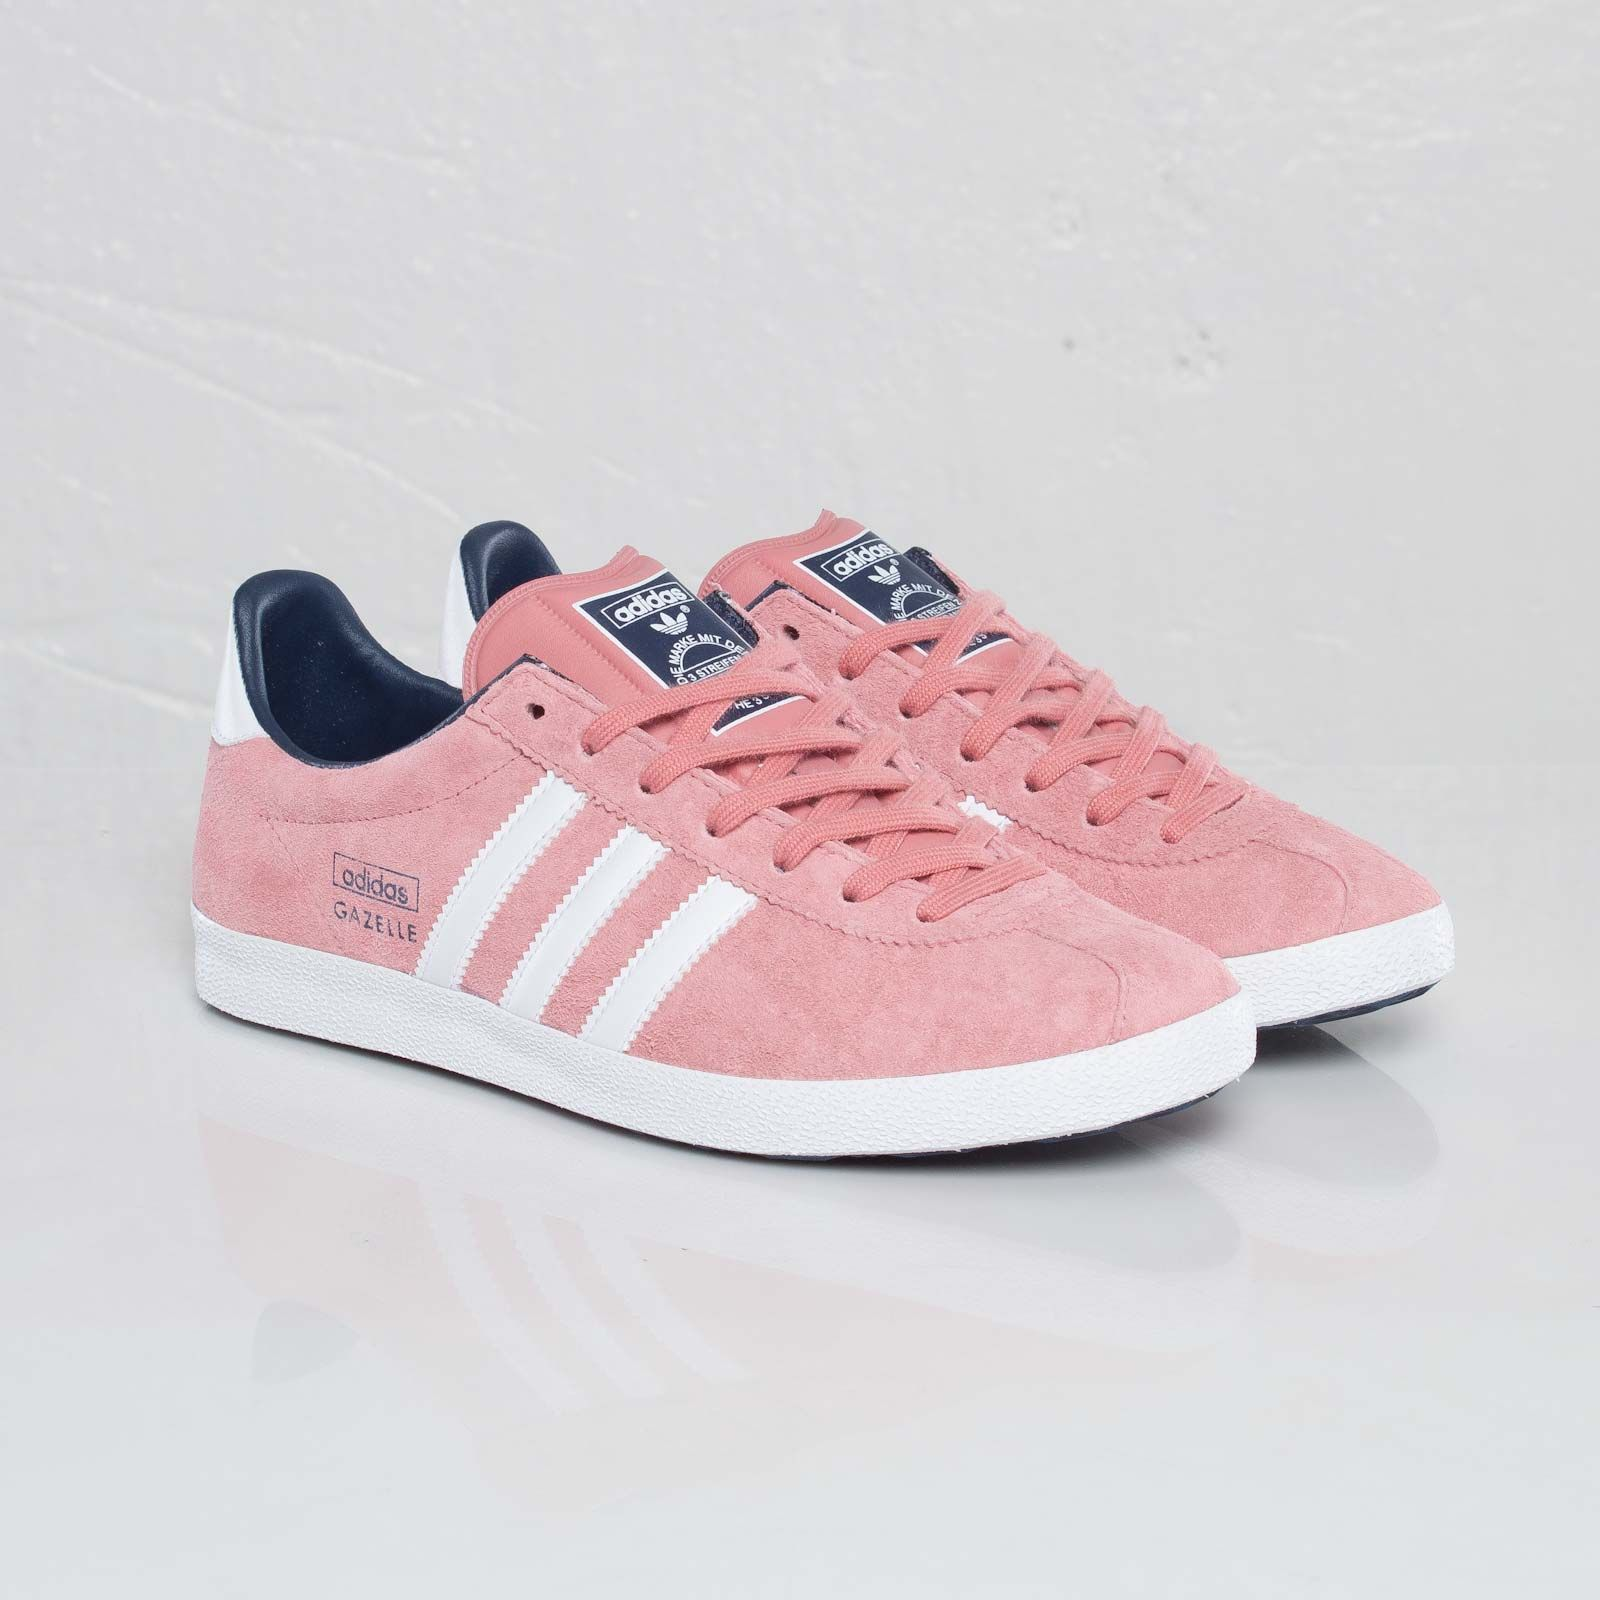 Pretty in Pink Adidas Originals Gazelle OG W